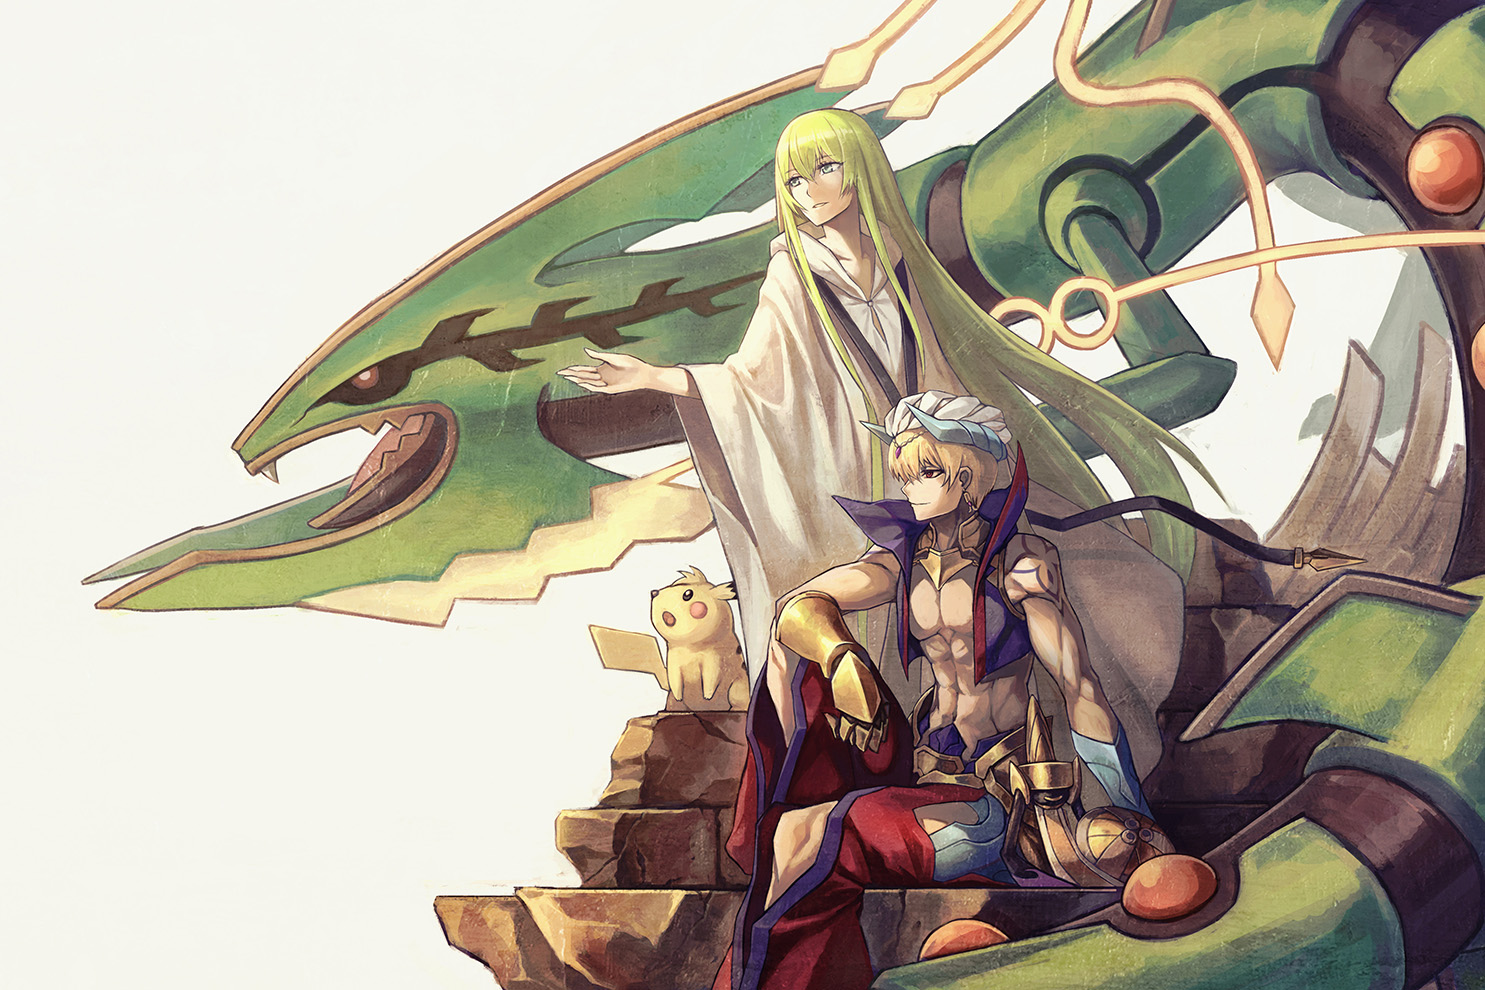 aegislash a-er_(akkij0358) blonde_hair crossover elbow_gloves enkidu fate/grand_order fate_(series) gilgamesh gloves green_eyes green_hair hat horns long_hair male pikachu pokemon rayquaza red_eyes short_hair tattoo white